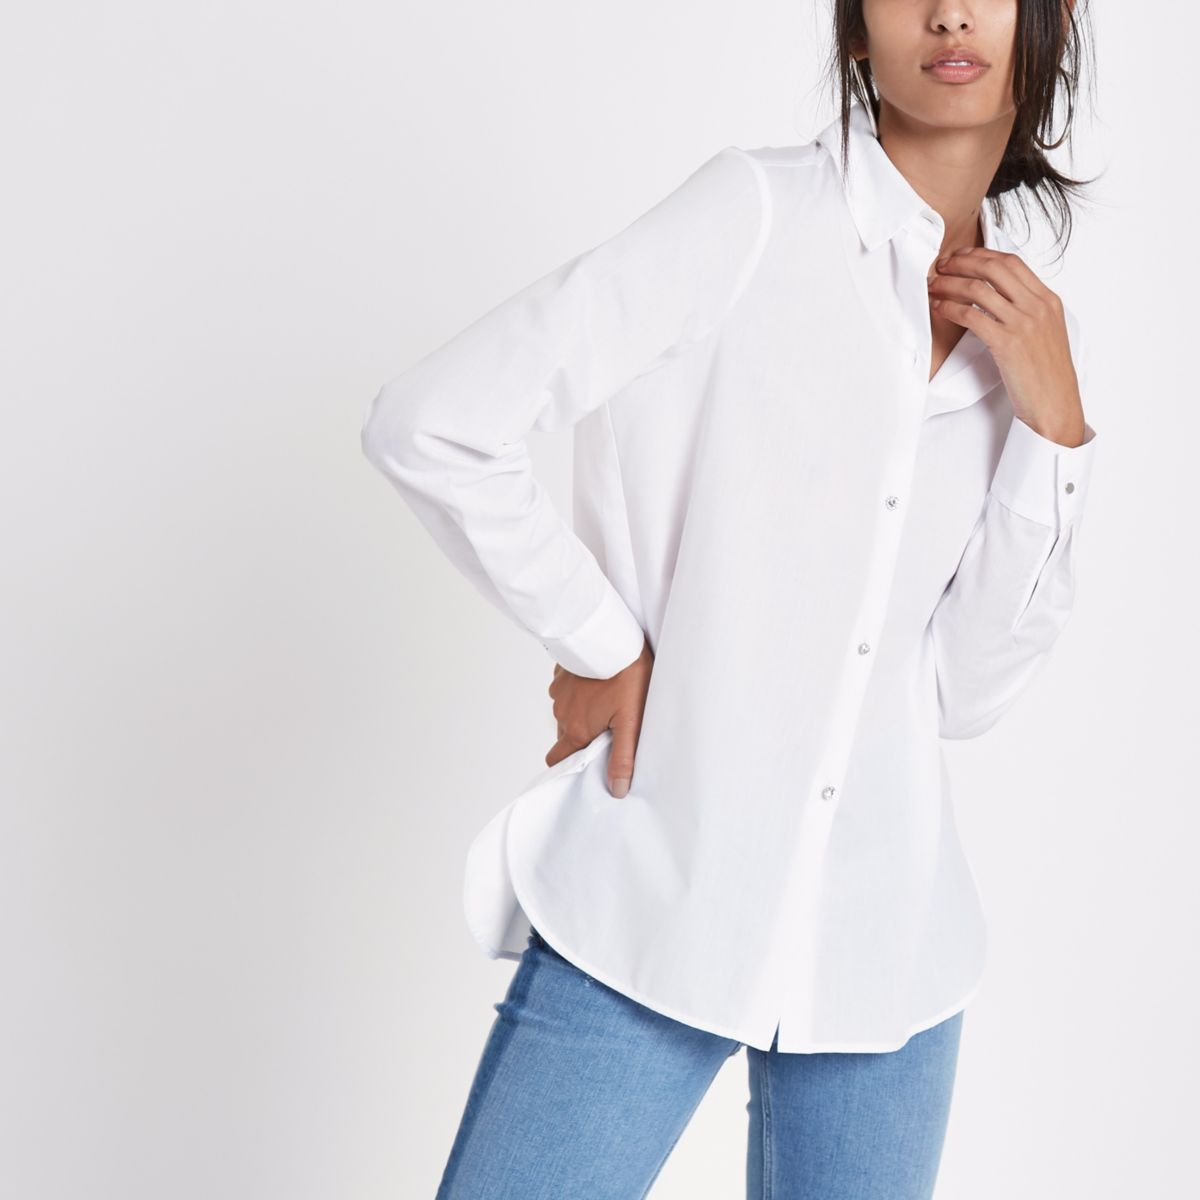 White rhinestone embellished button shirt